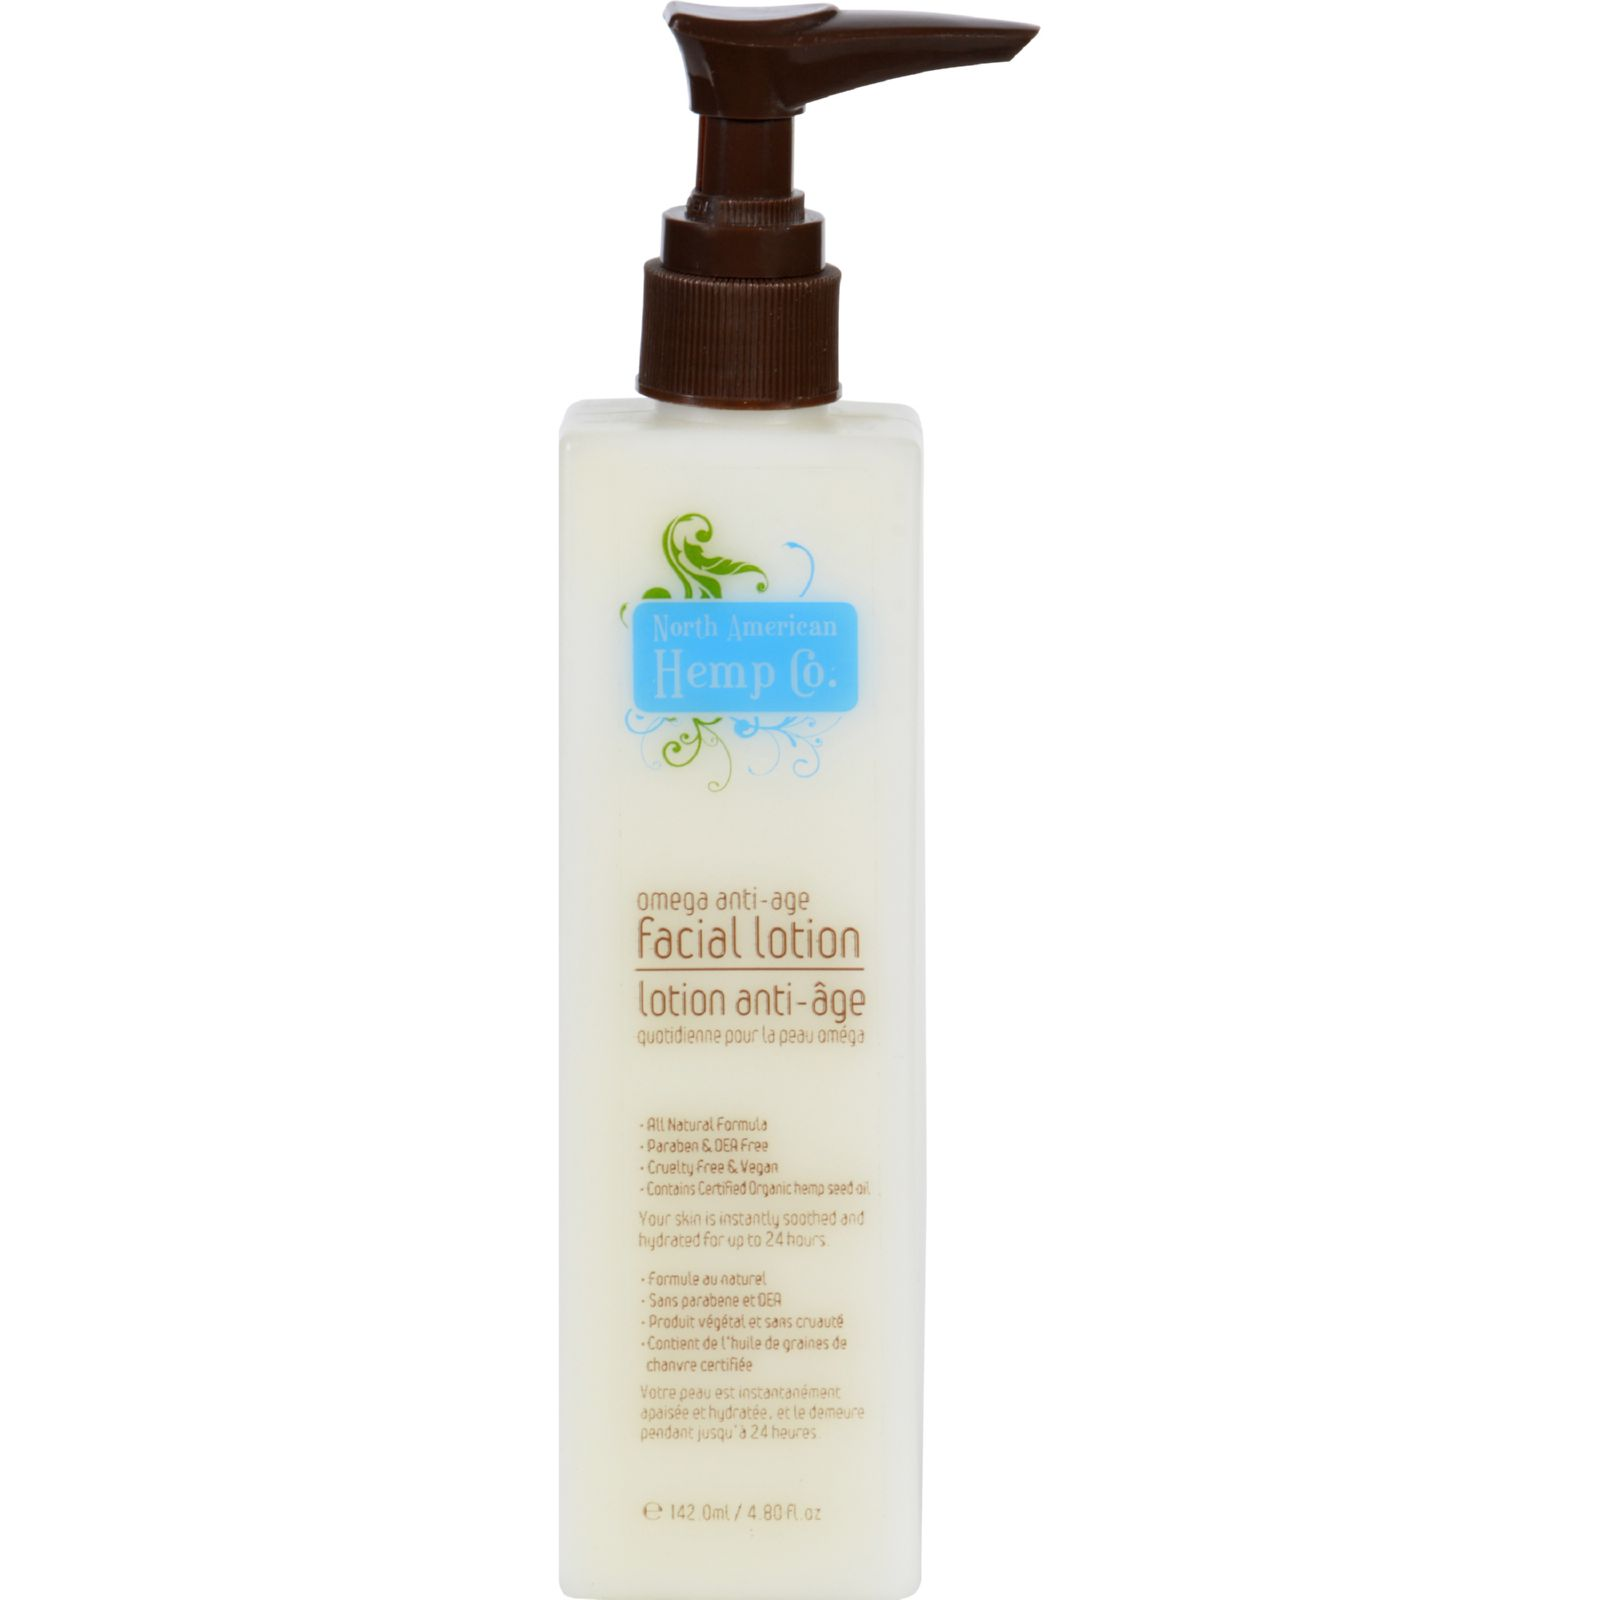 North American Hemp Company Facial Lotion - 4.8 Fl Oz